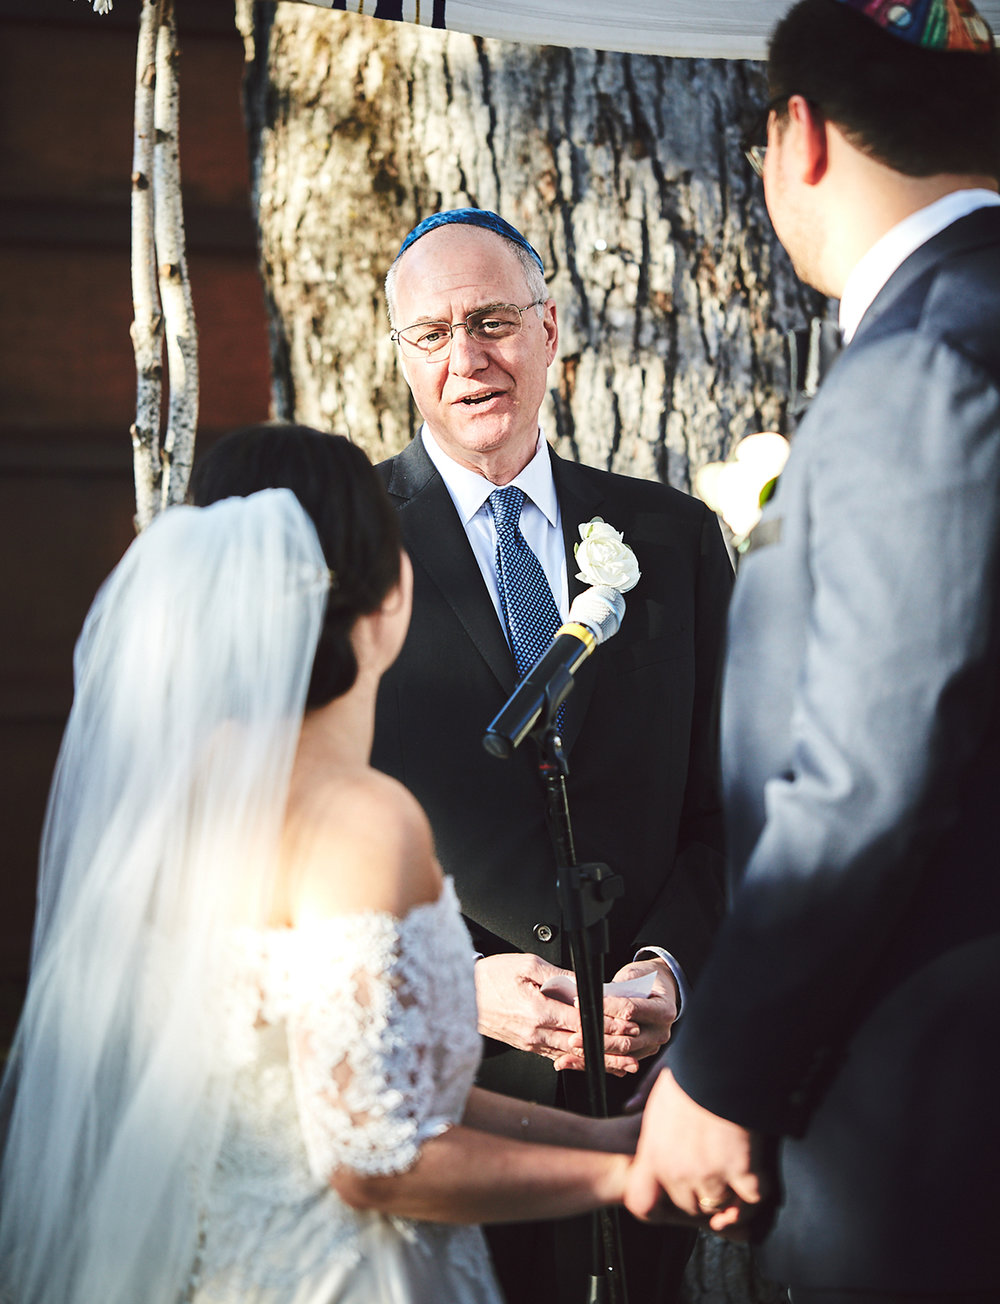 180324_StonehouseatStirlingRidgeWeddingPhotography_NJWeddingPhotographer_By_BriJohnsonWeddings_0104.jpg